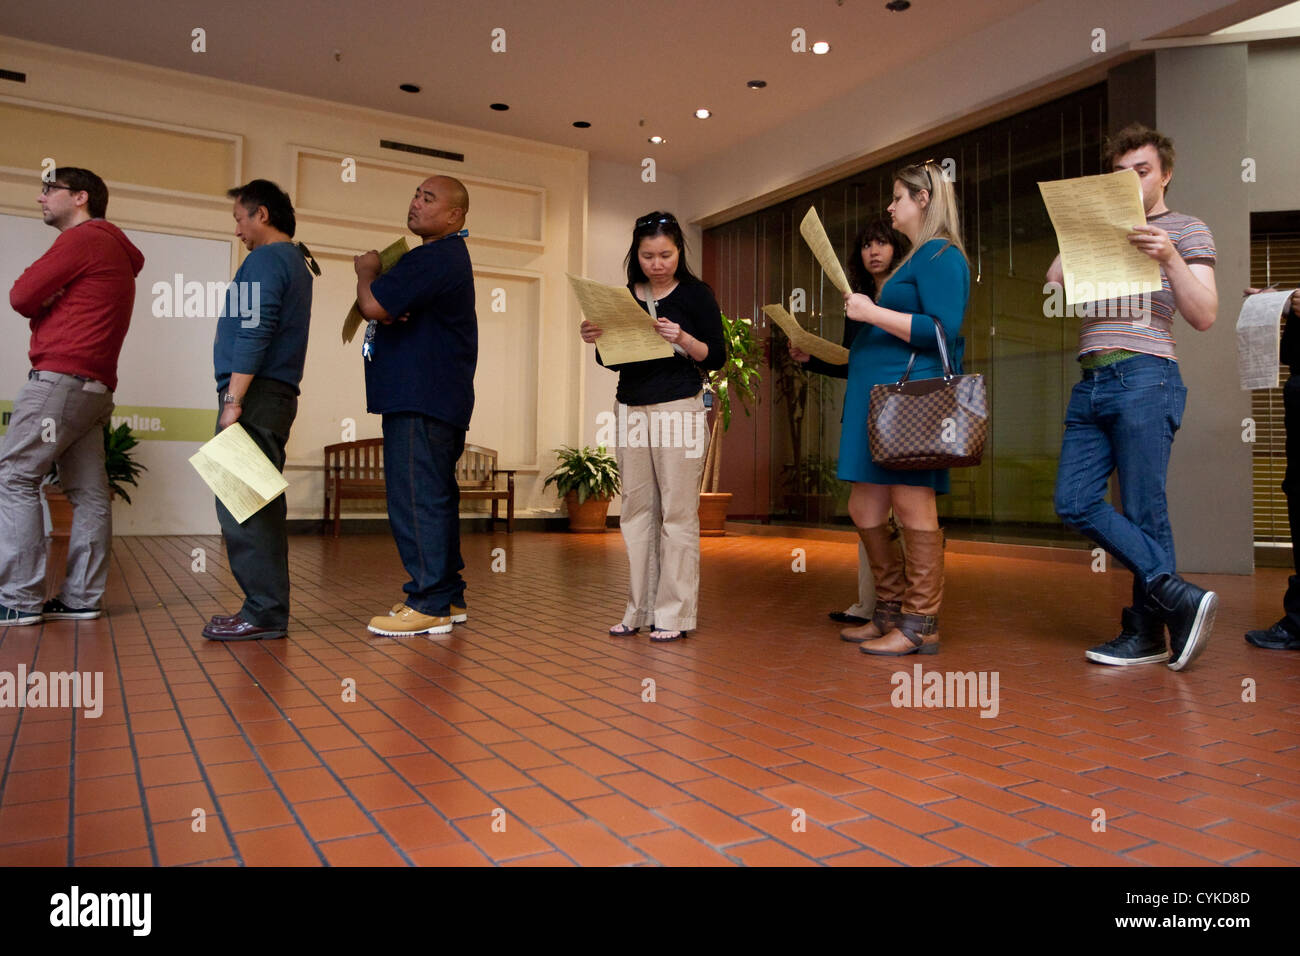 November 6th, 2012 Austin, Texas: Voters stand in line and review ballot waiting to cast their vote in Travis County - Stock Image